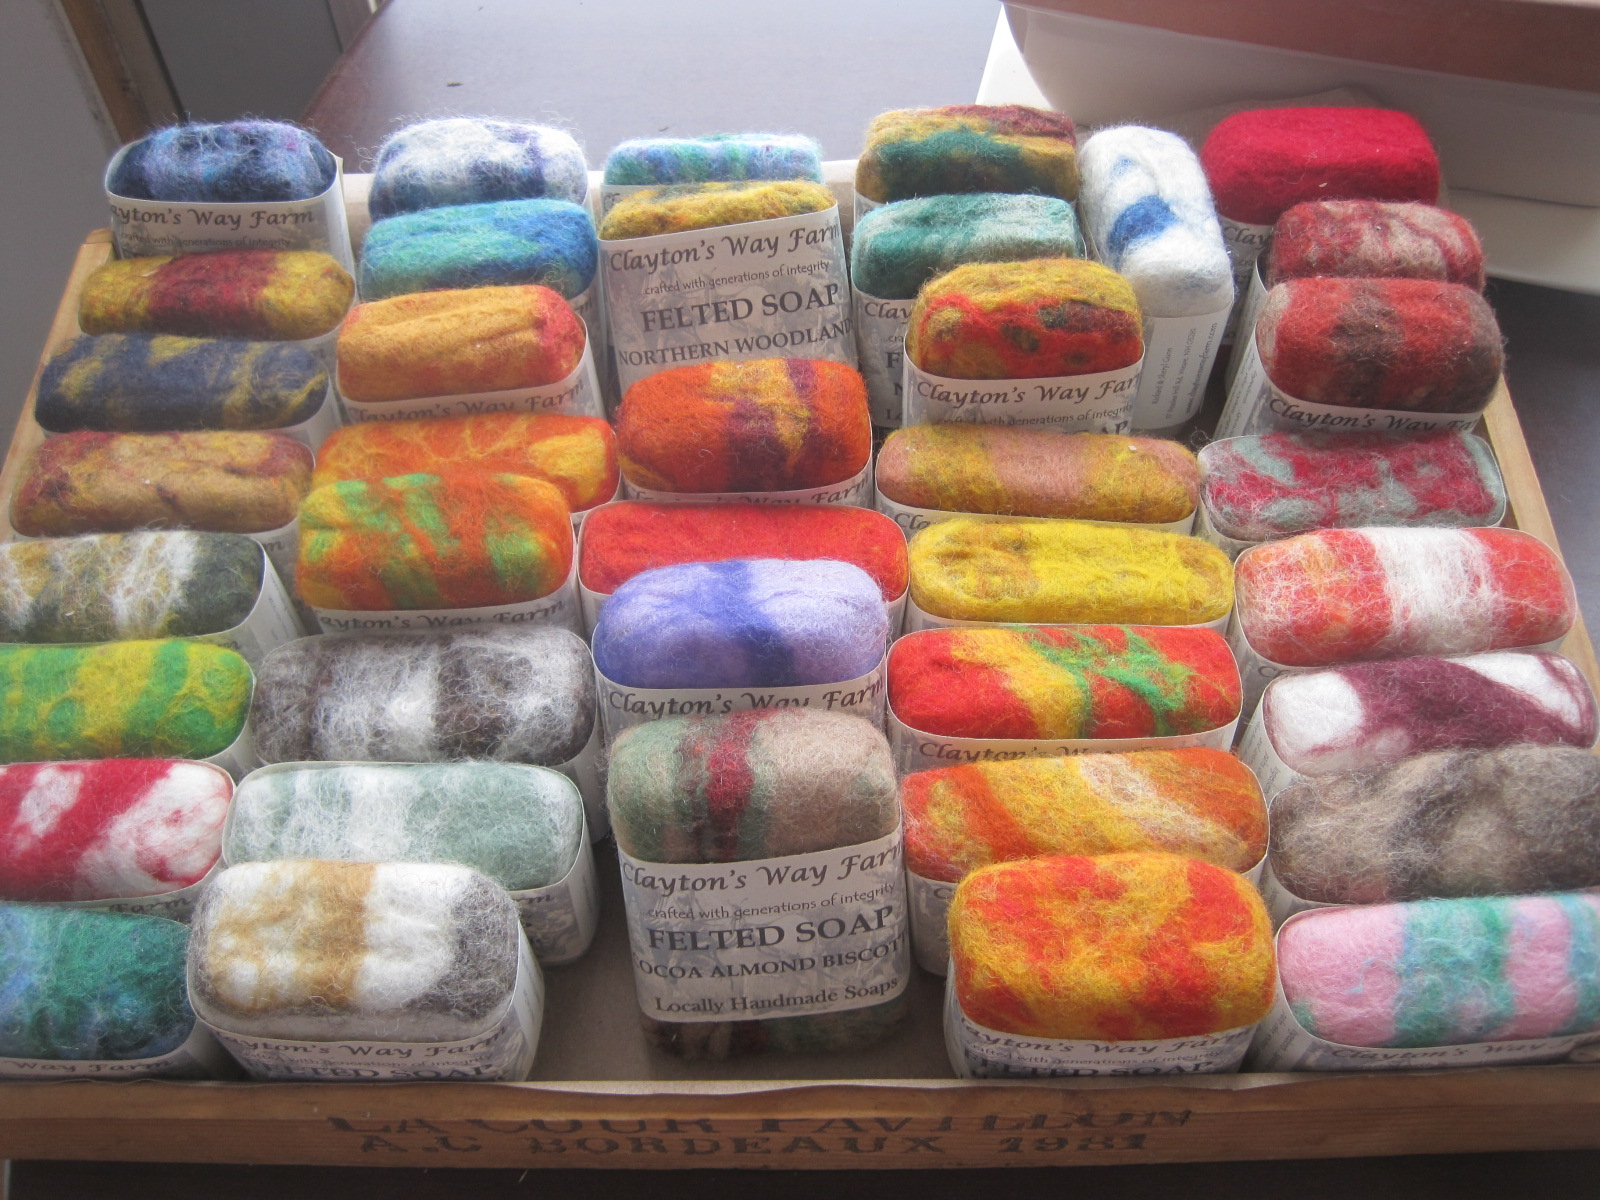 Harvest Spice - Felted